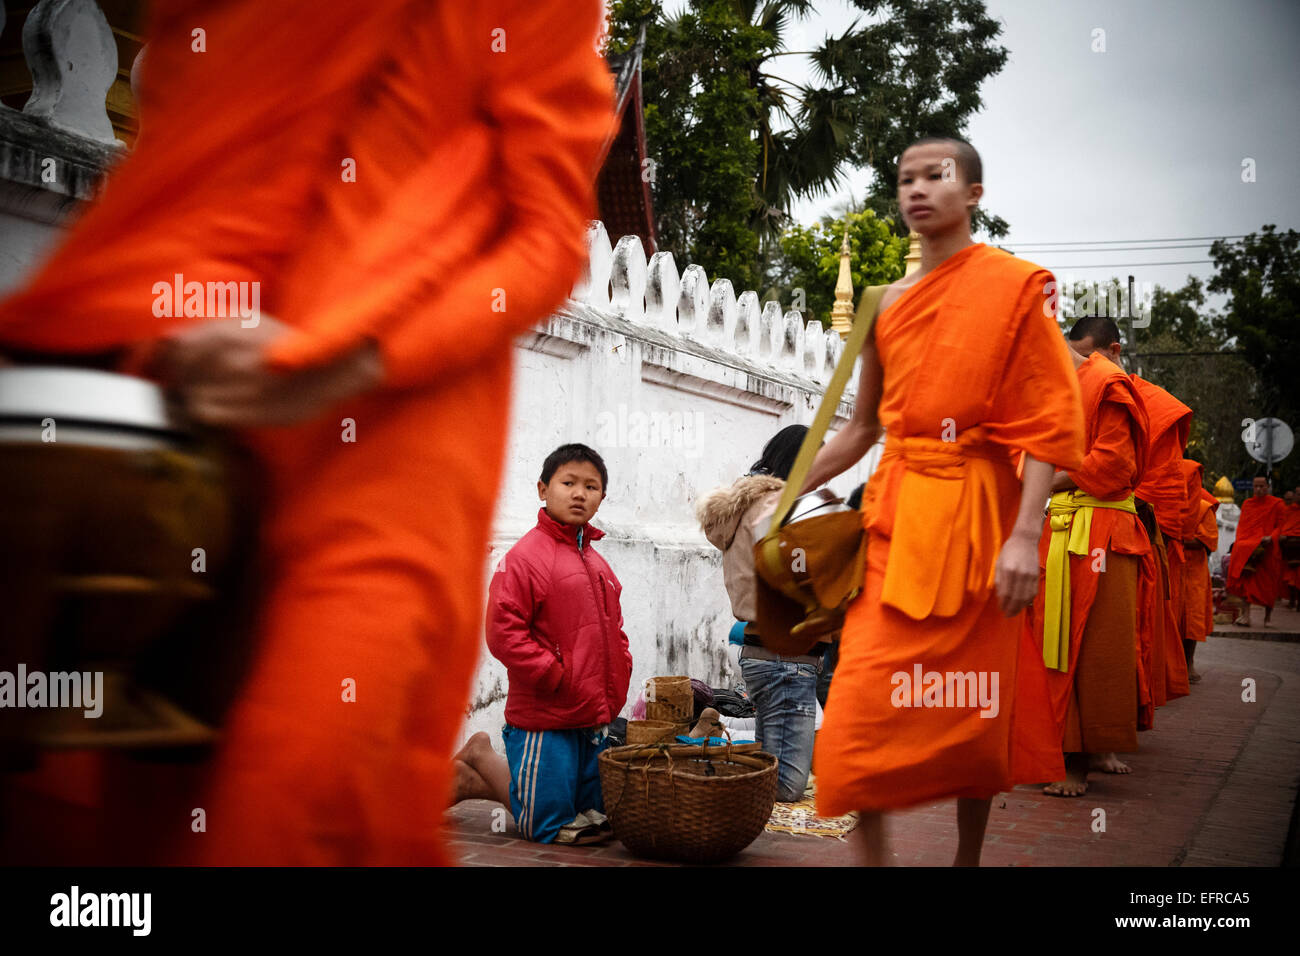 Monks collecting alms at sunrise, Luang Prabang, Laos. - Stock Image